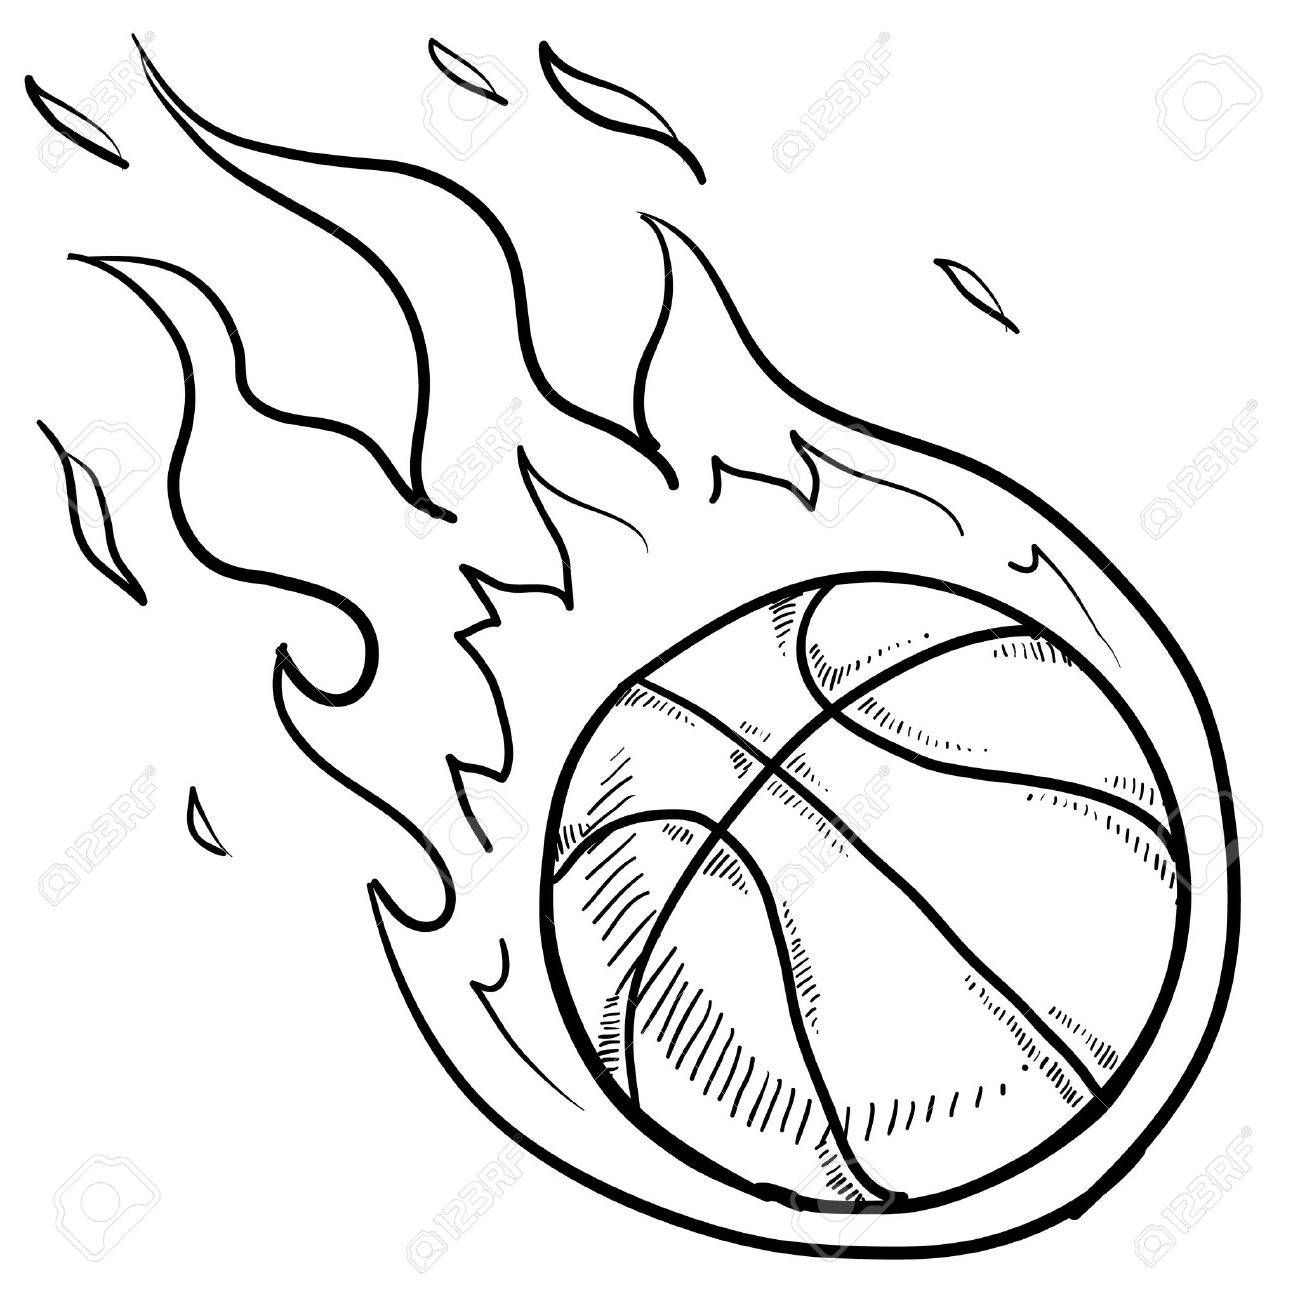 Doodle Style Flaming Basketball Illustration In Vector Format Sports Coloring Pages Coloring Pages For Boys Coloring Pages